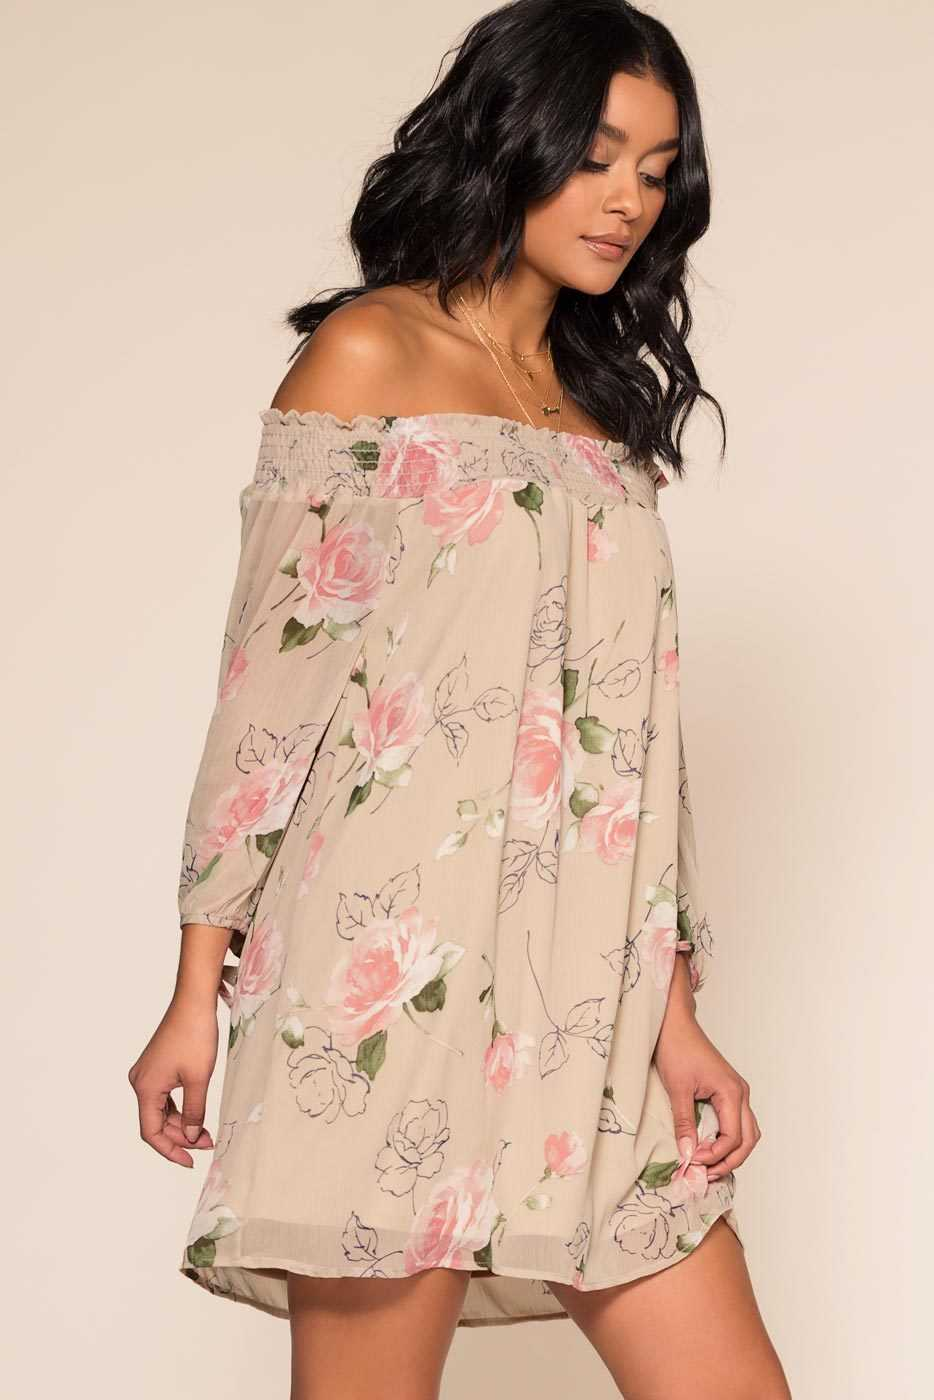 Dresses - True Touch Off The Shoulder Dress